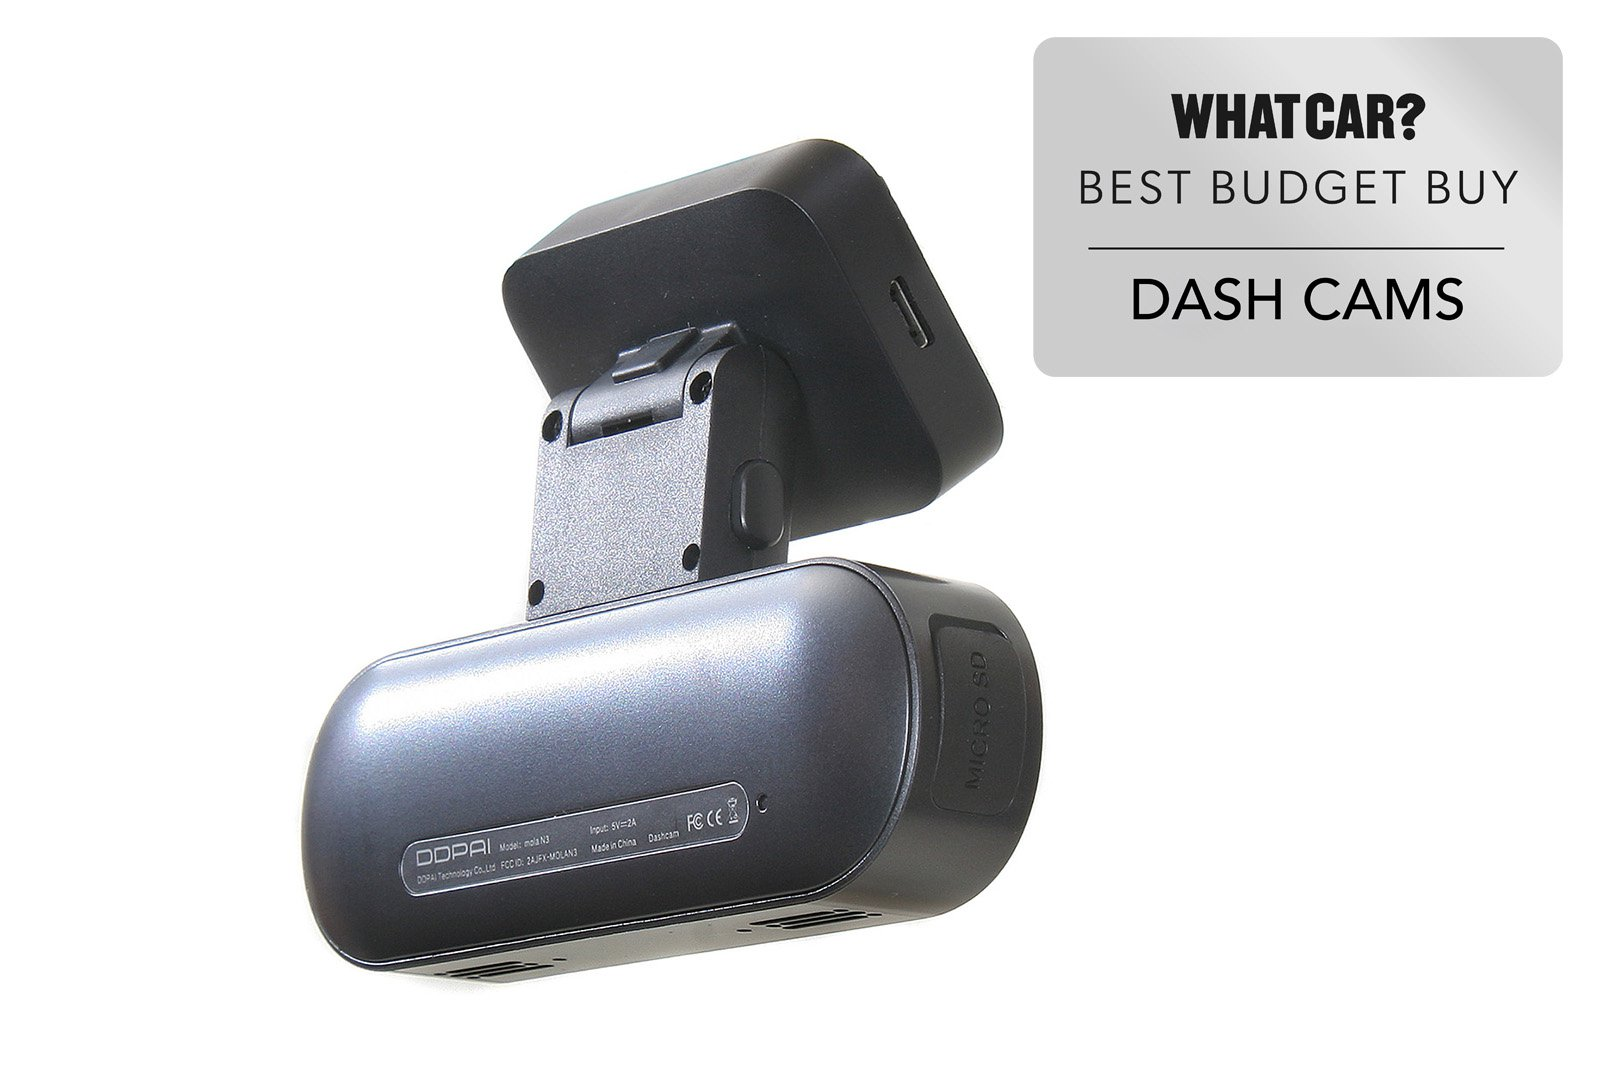 Dash cam best budget buy